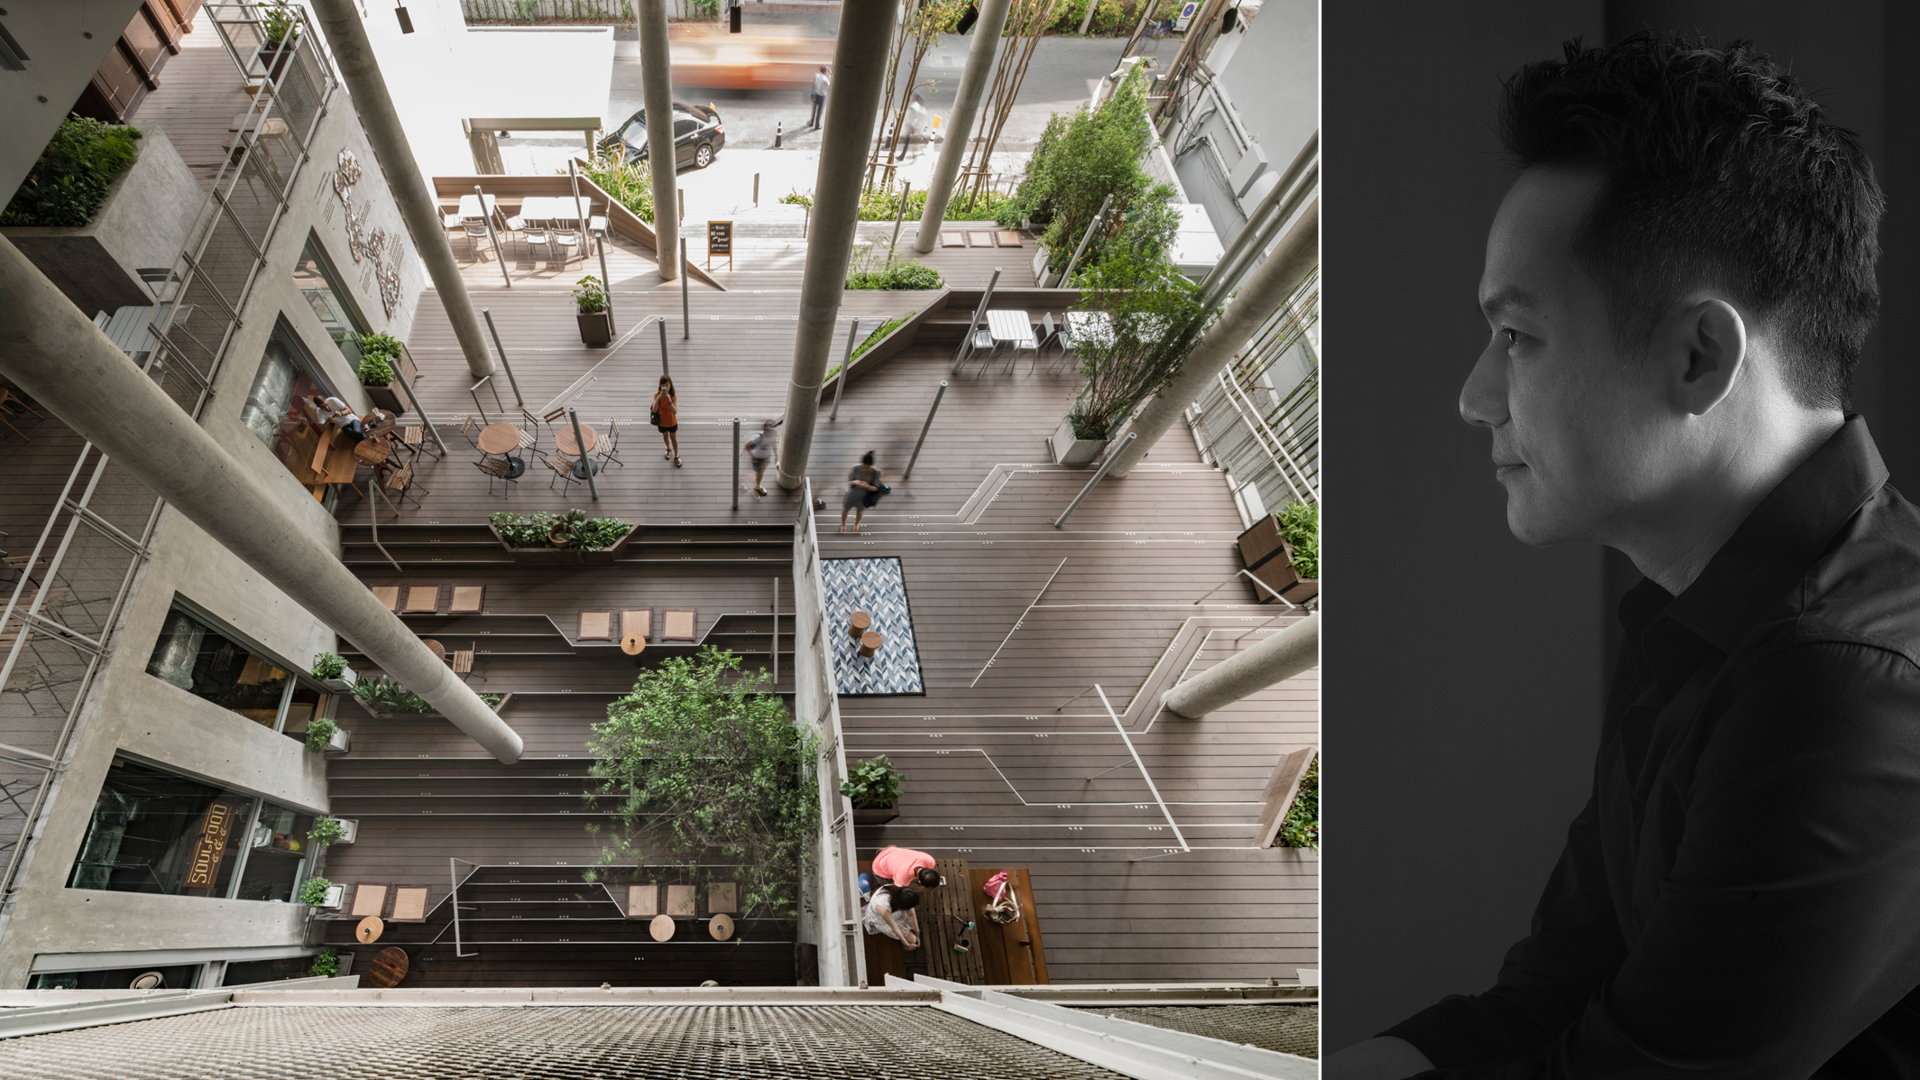 Amata Luphaiboon discusses architectural explorations